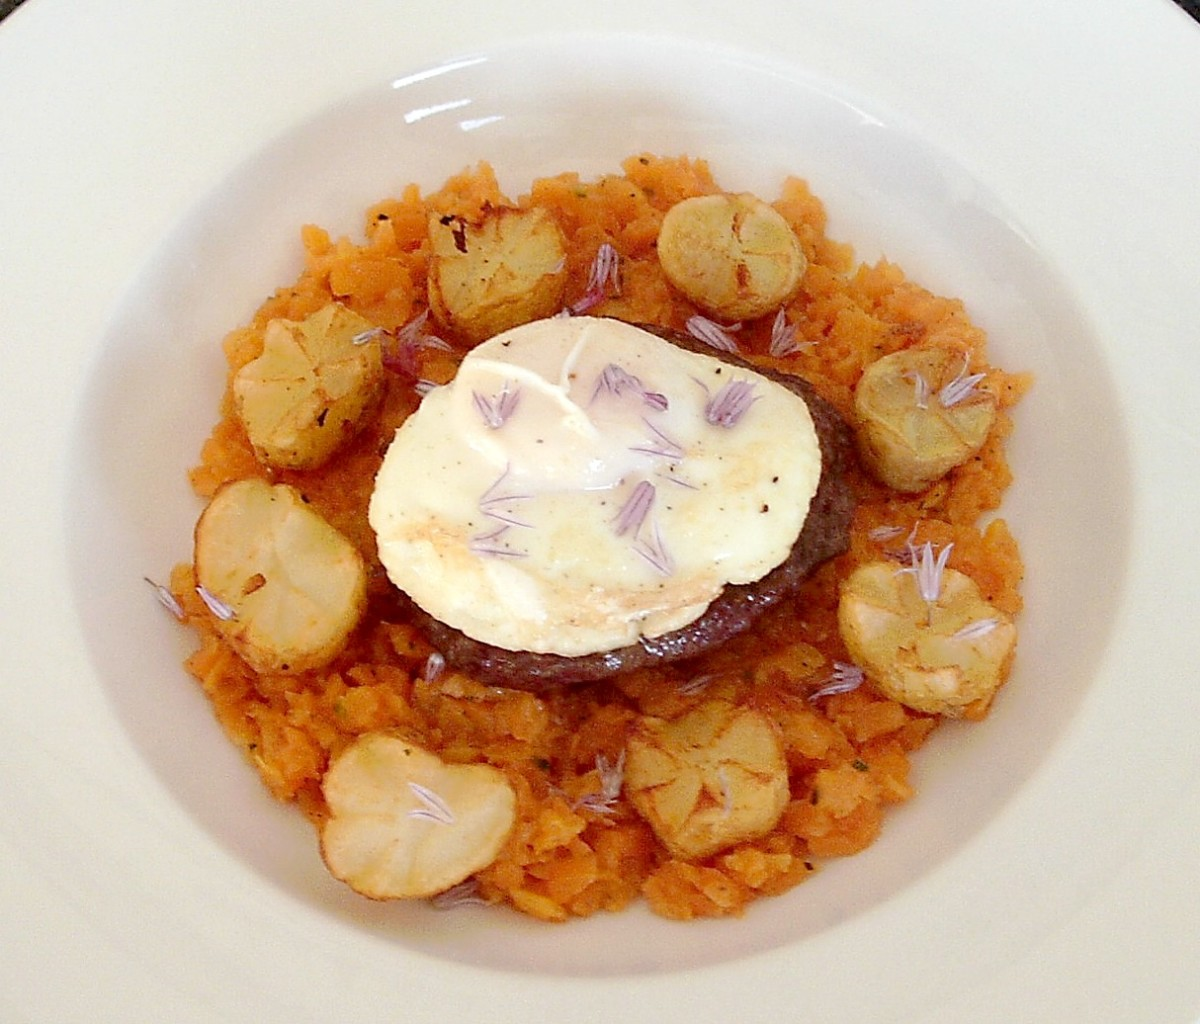 Buffalo and beef burger on carrot mash with deep-fried potato crowns, poached egg and chive flowers.